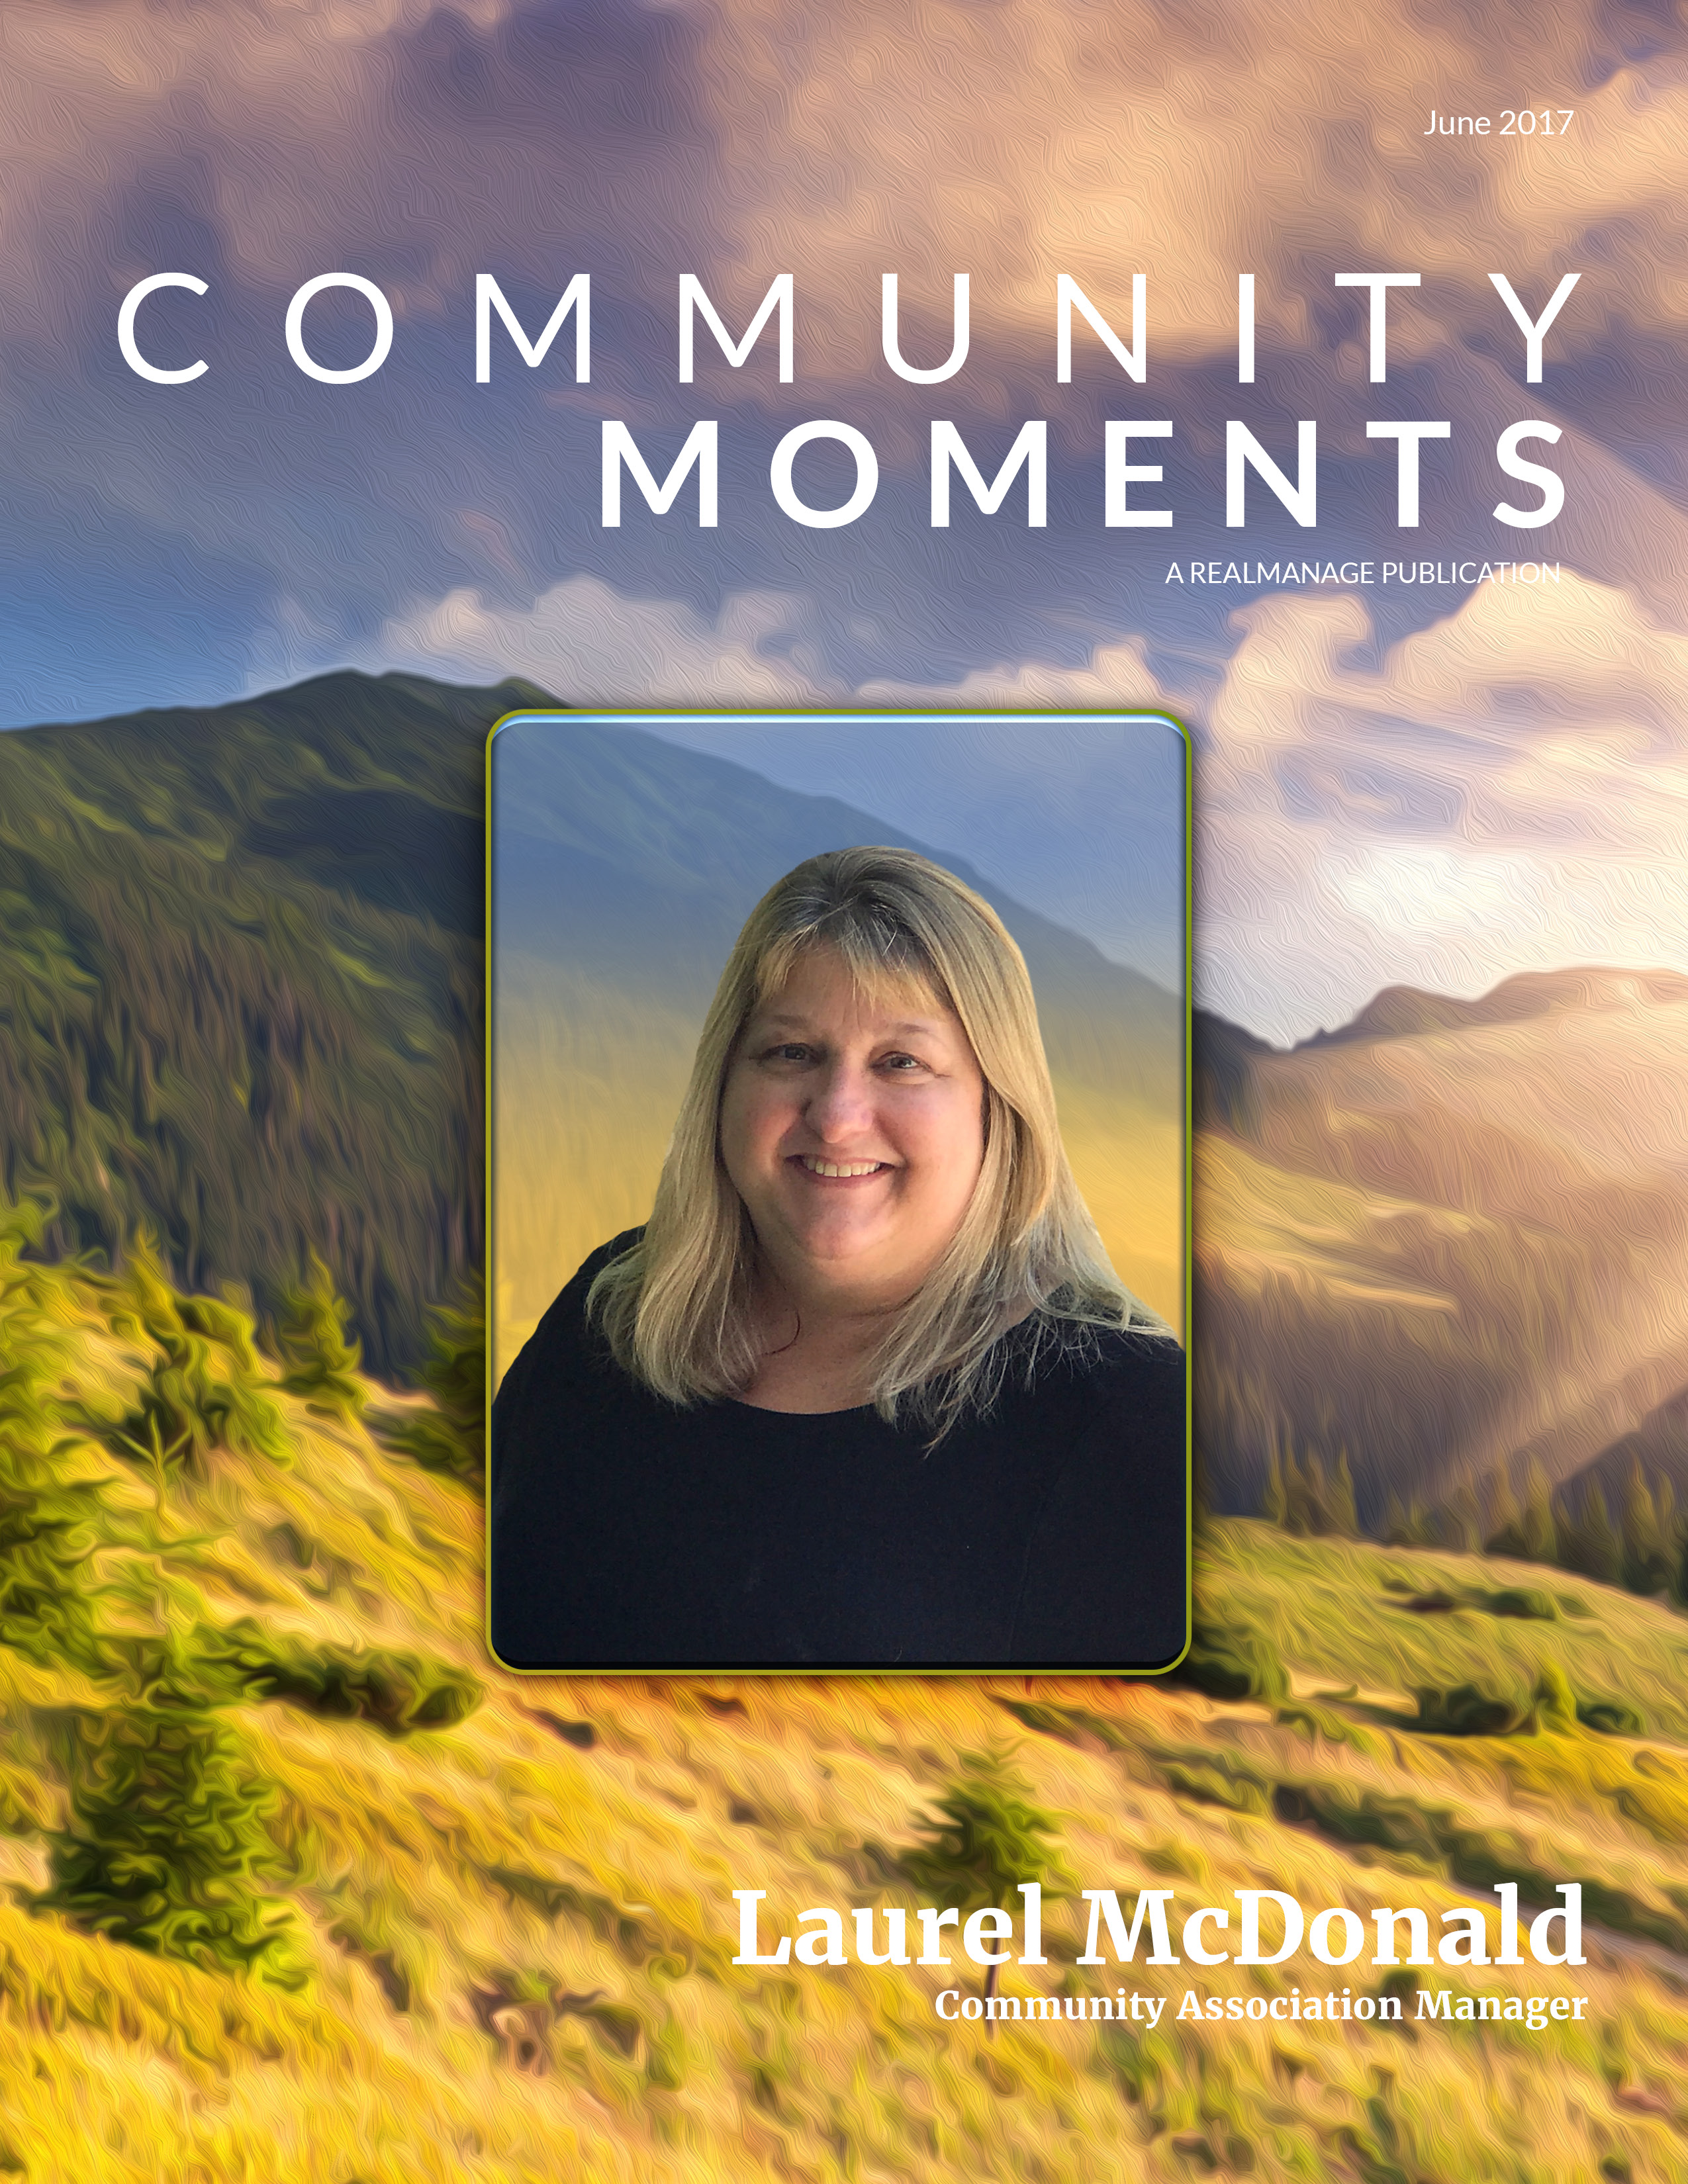 June 2017, Community Moments Magazine Cover